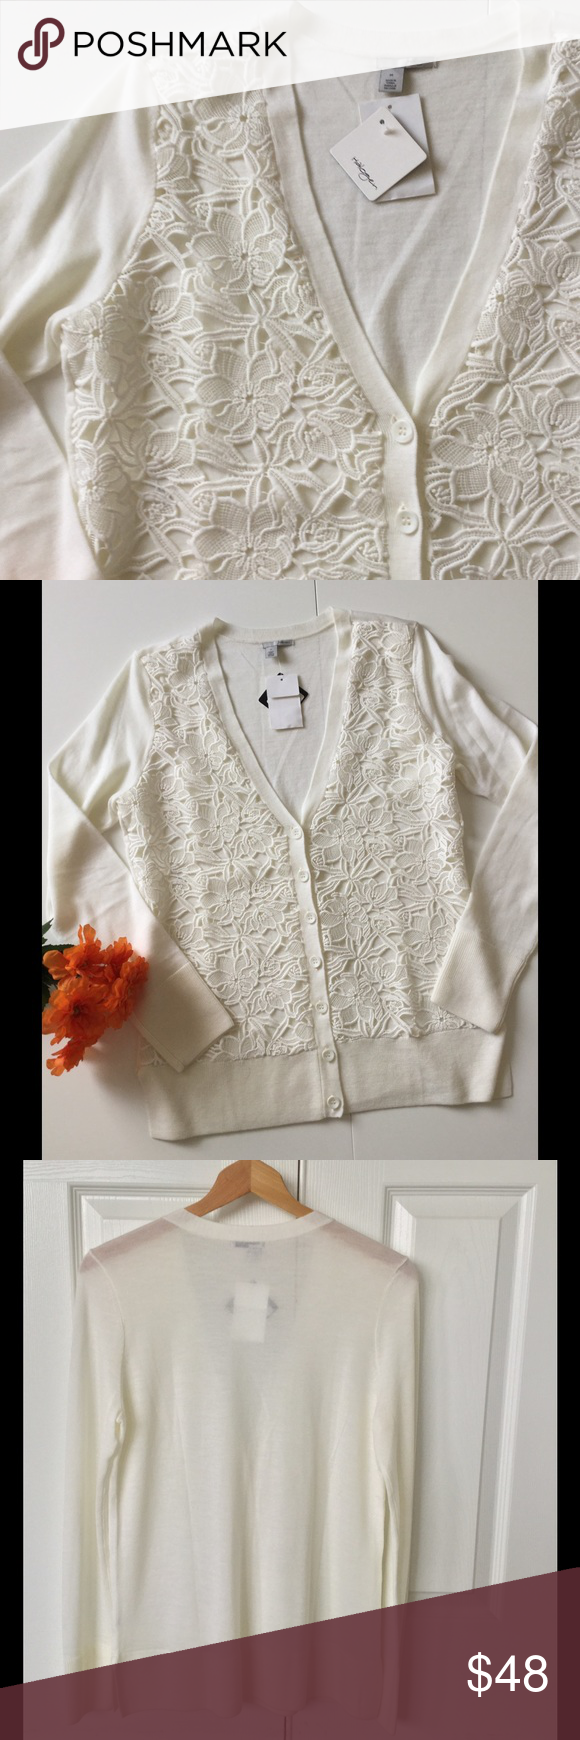 Halogen Lace Sweater NWT Merino Wool NWT | Lace sweater, Merino ...